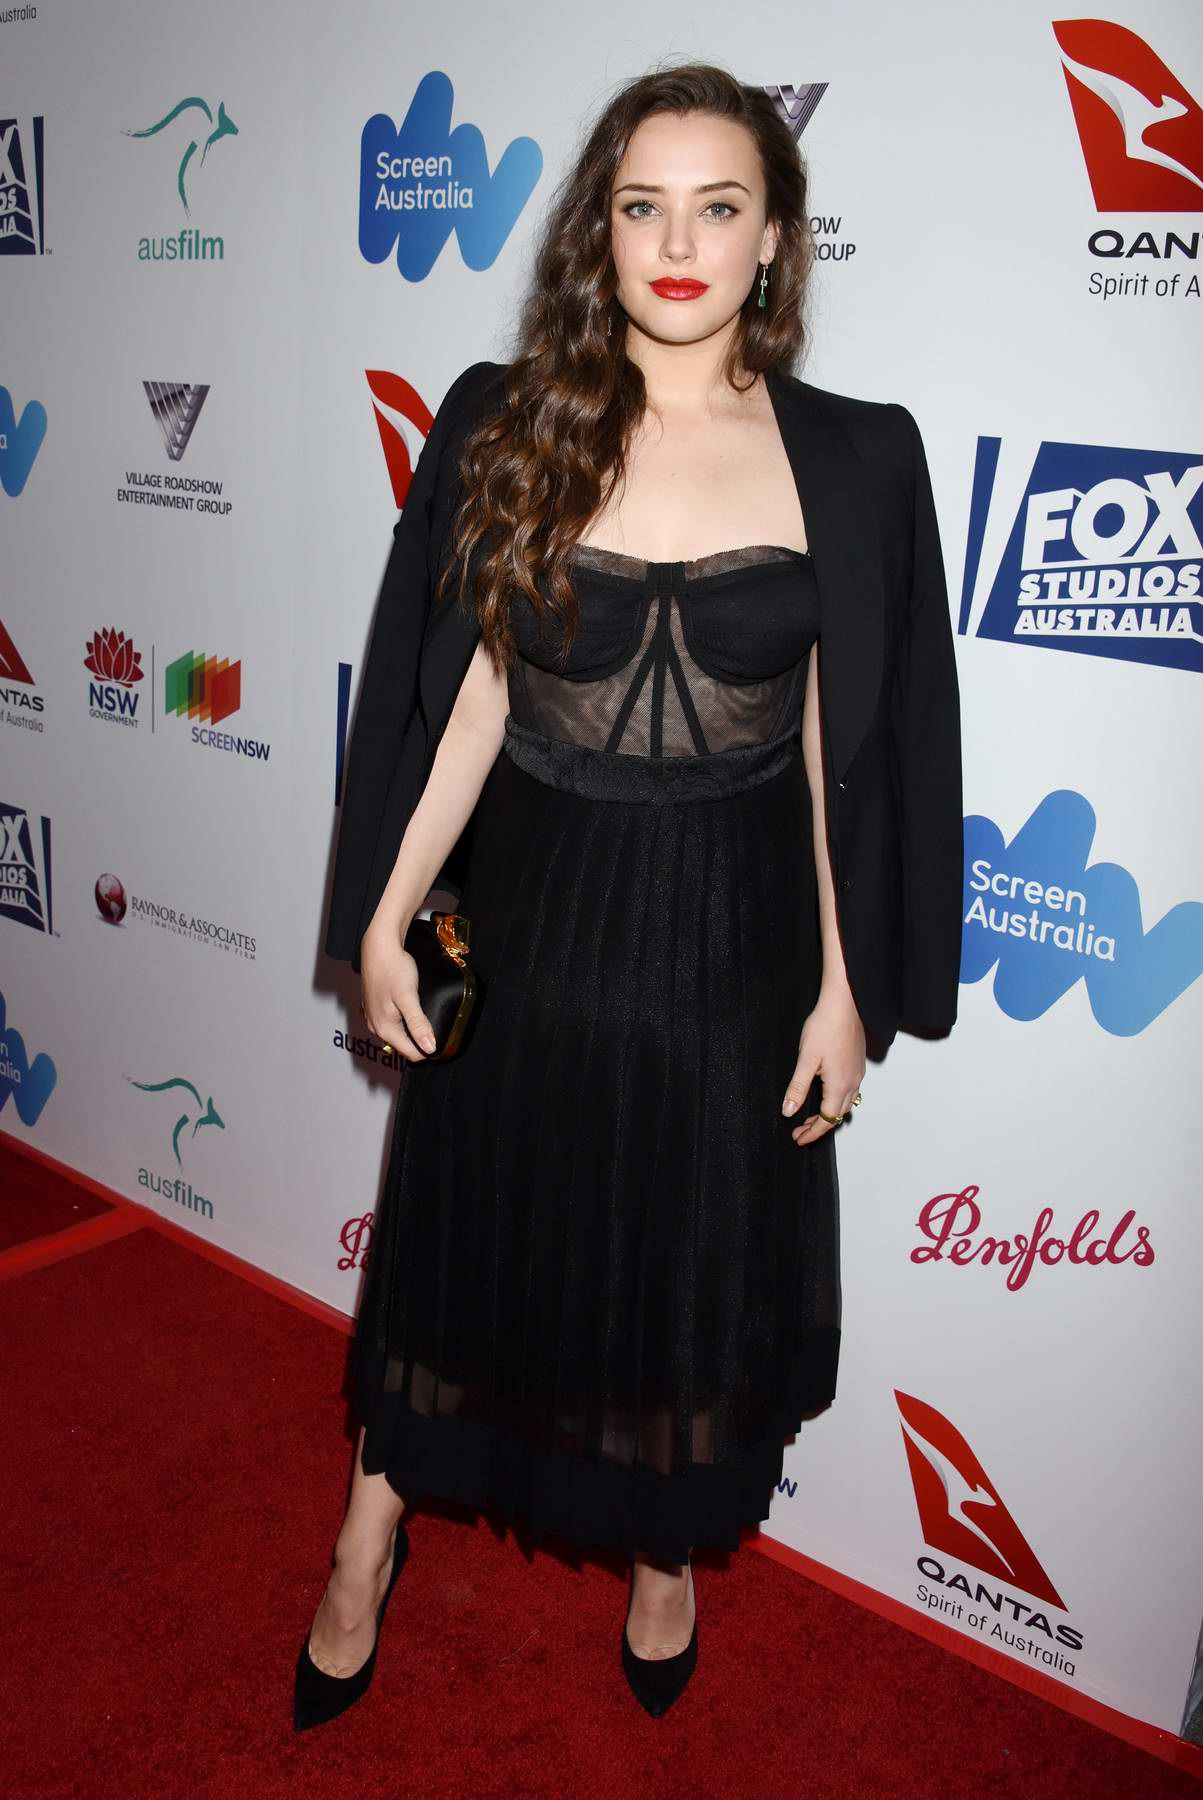 Katherine Langford at the 6th Annual Australians in Film Awards benefit dinner in Los Angeles